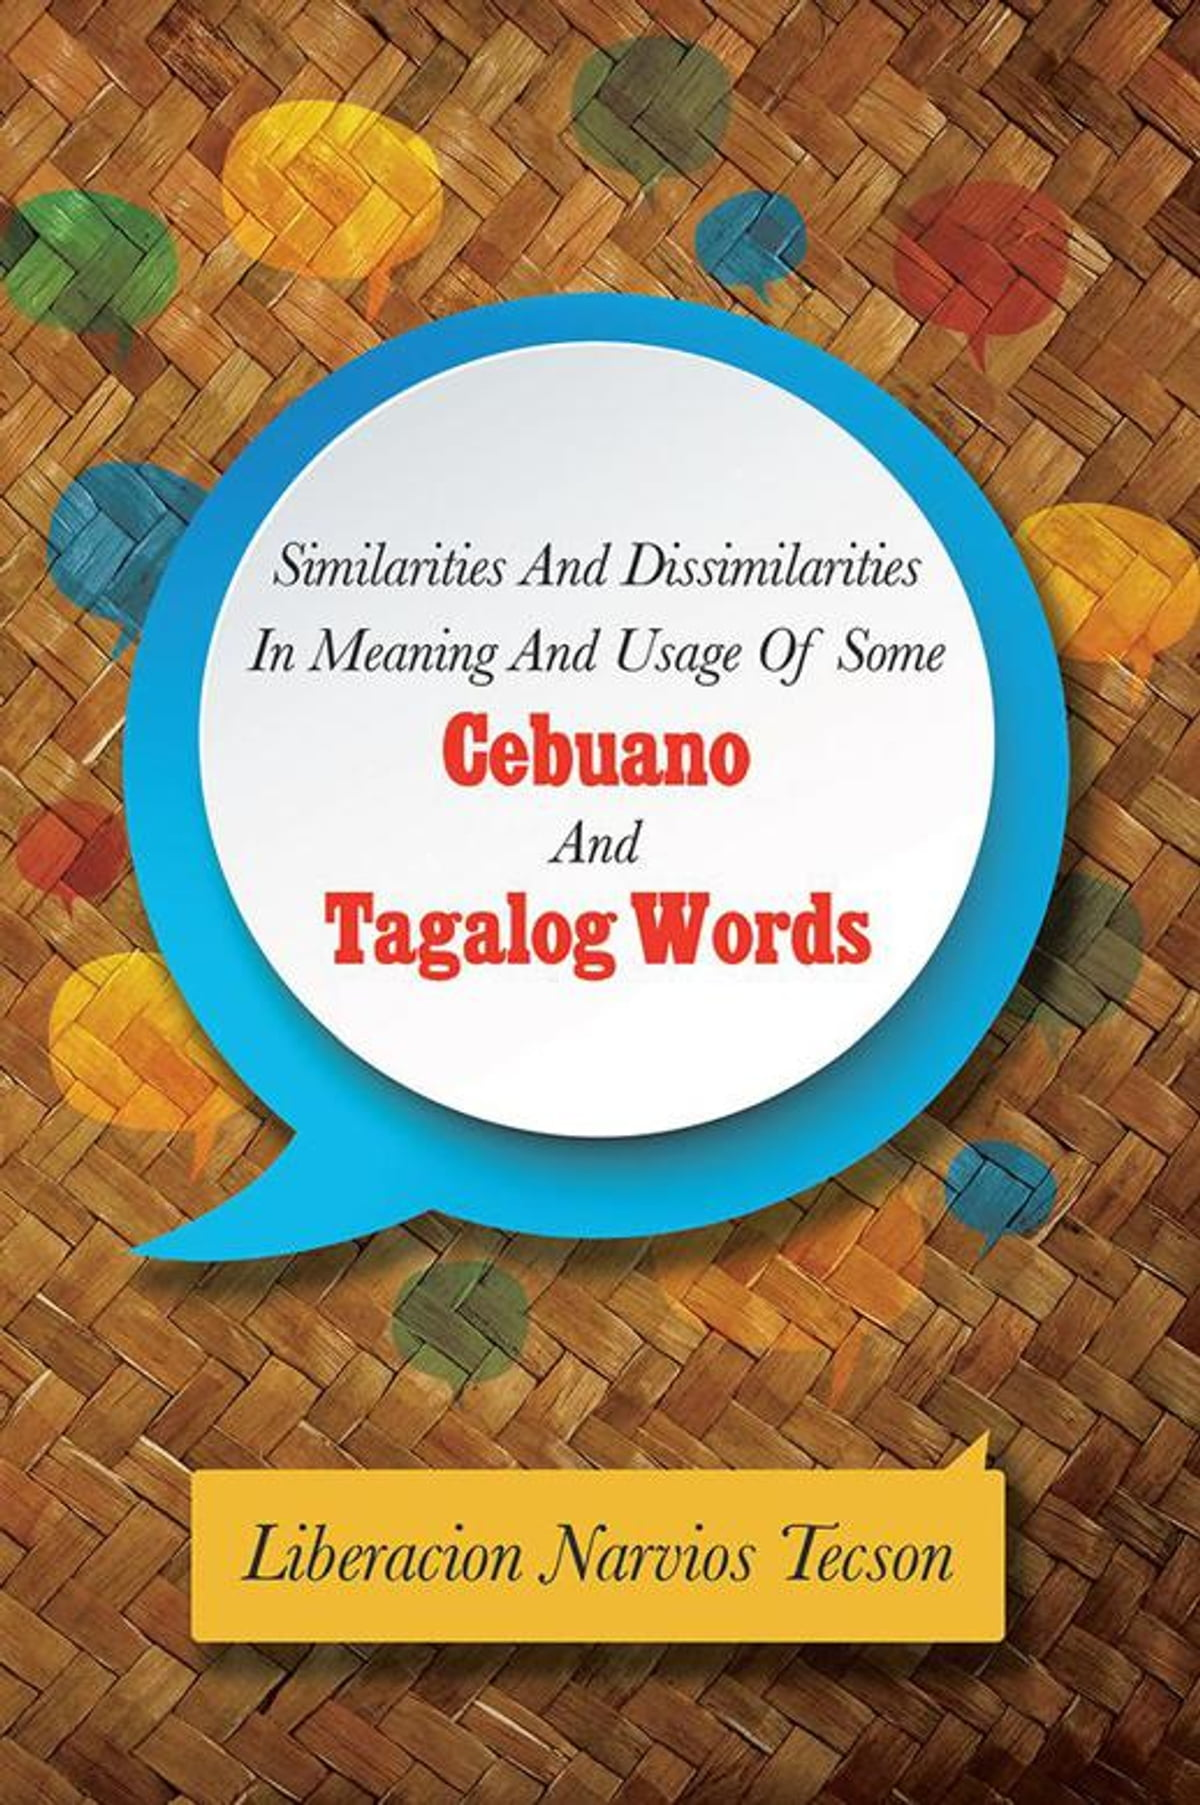 Similarities And Dissimilarities In Meaning And Usage Of Some Cebuano And Tagalog Words Ebook By Liberacion Narvios Tecson 9781499047196 Rakuten Kobo Philippines